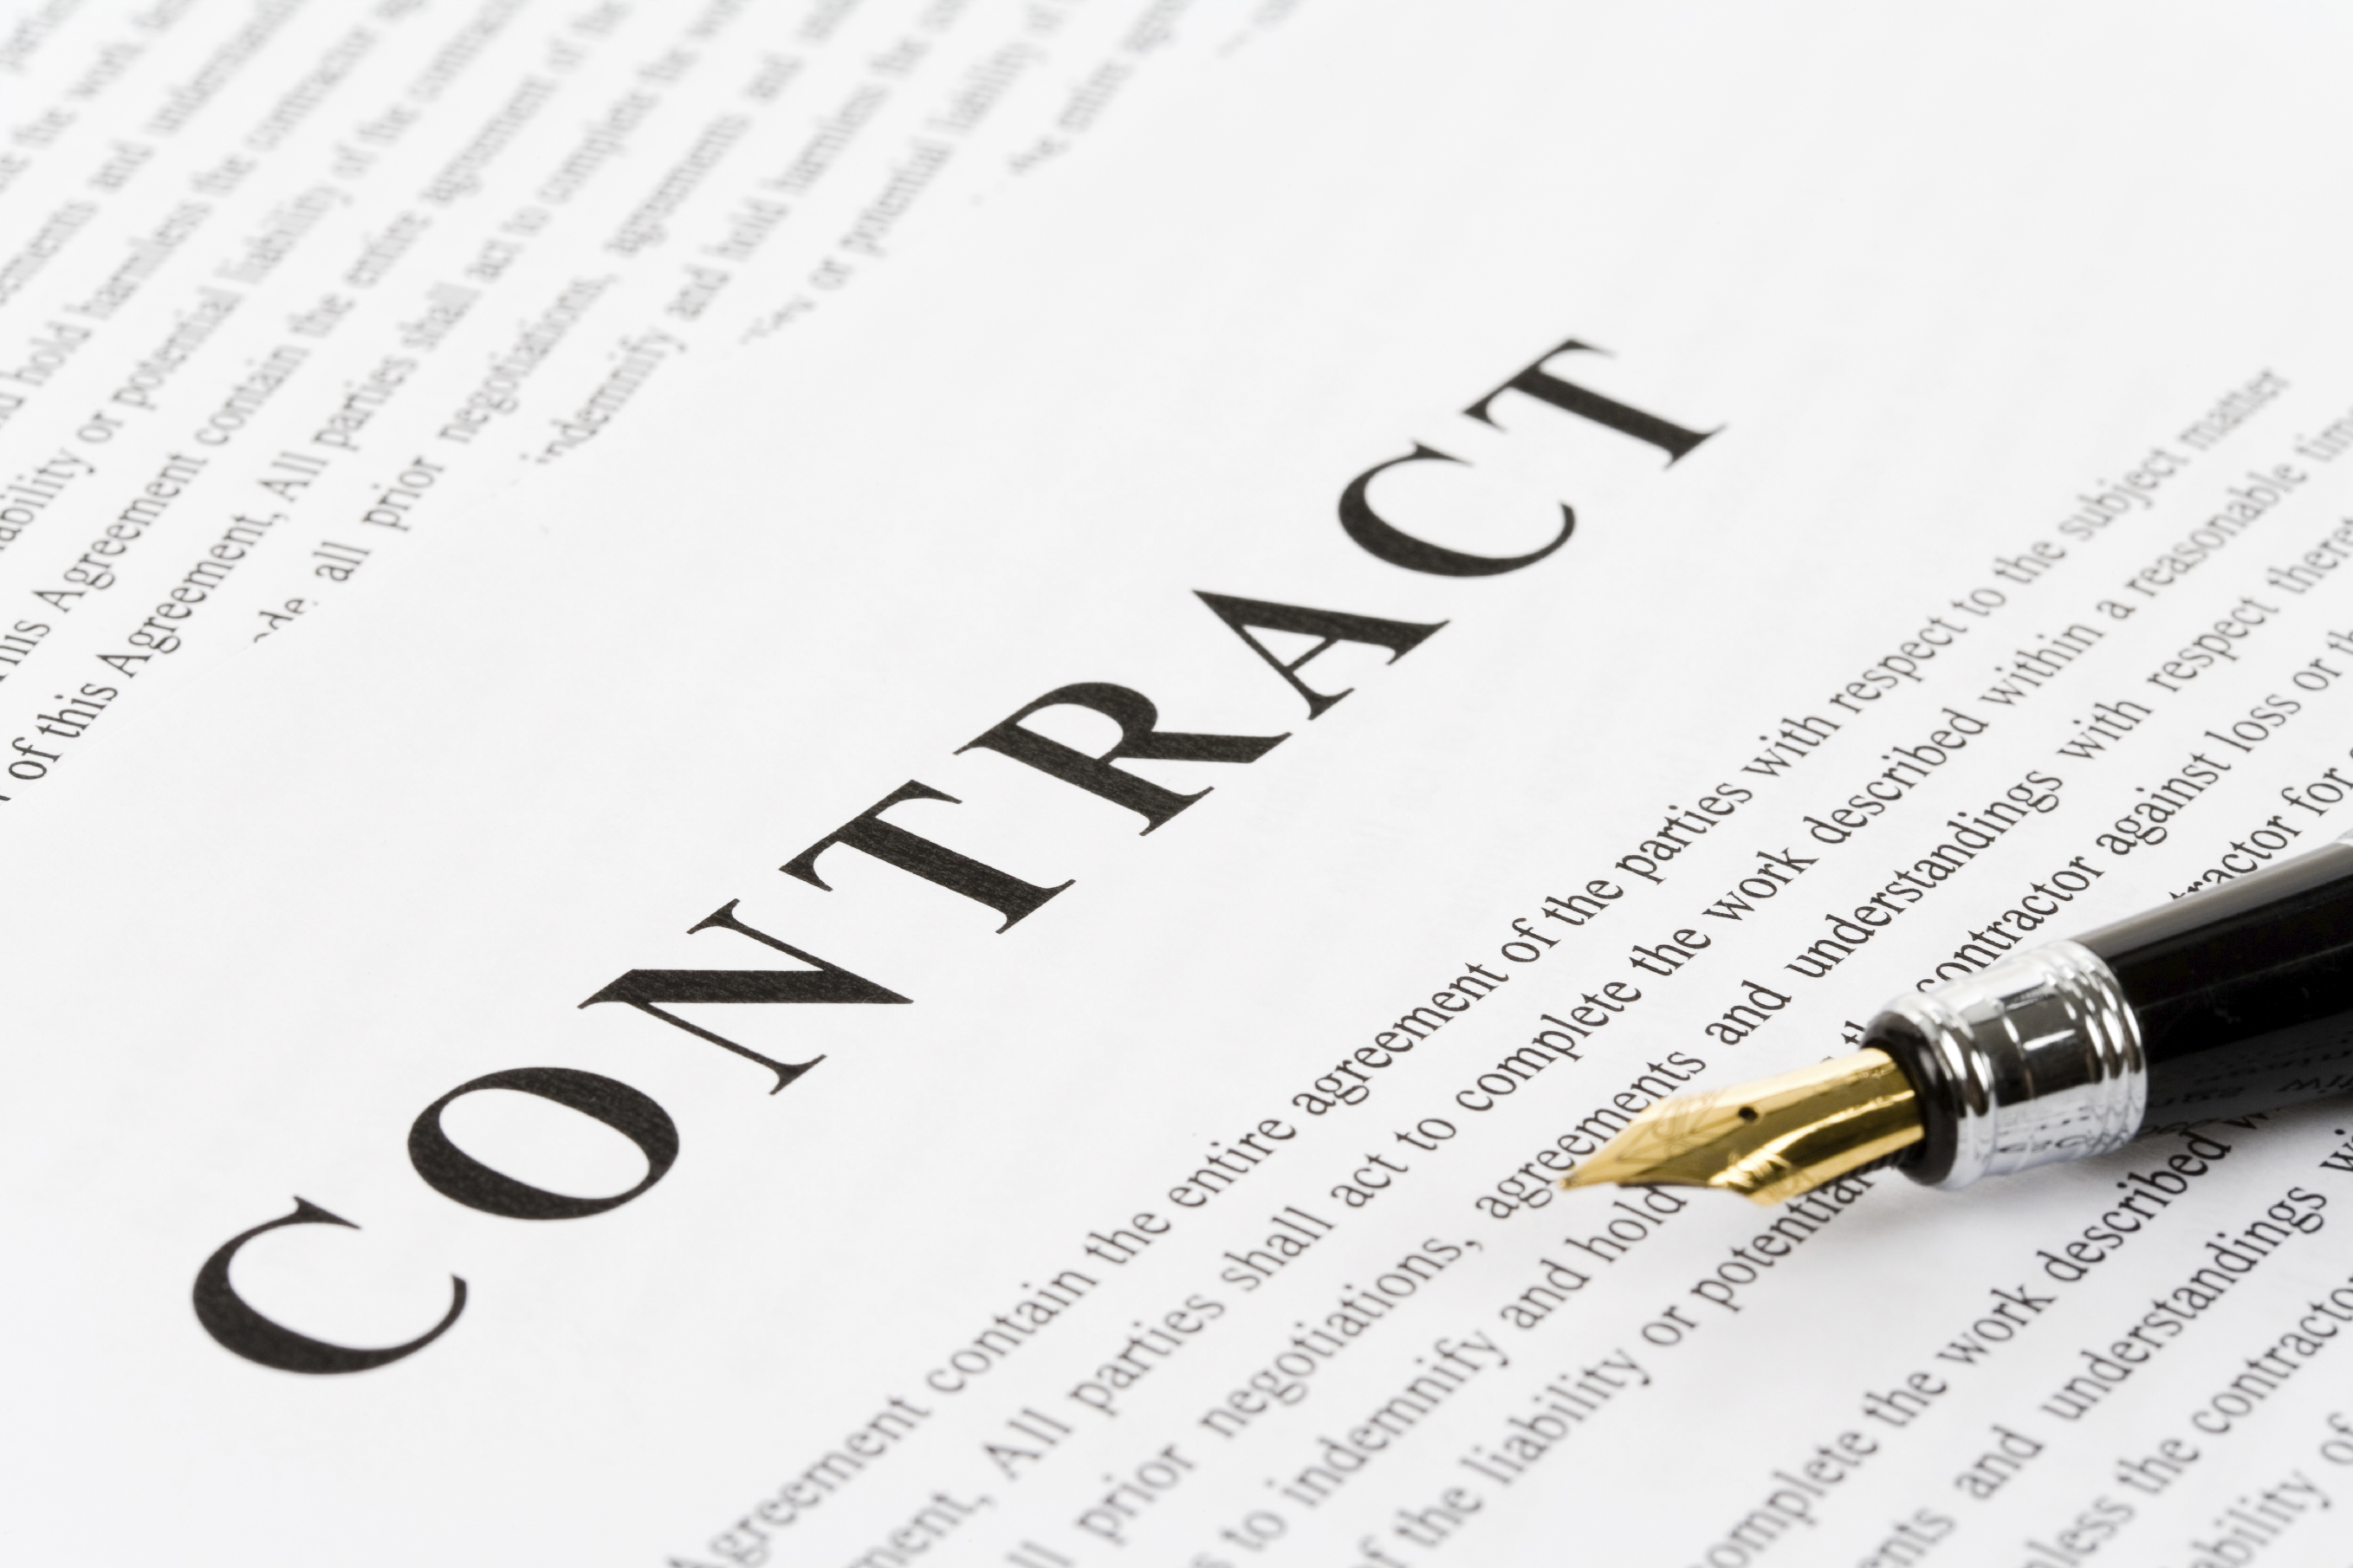 Picture of a business contract